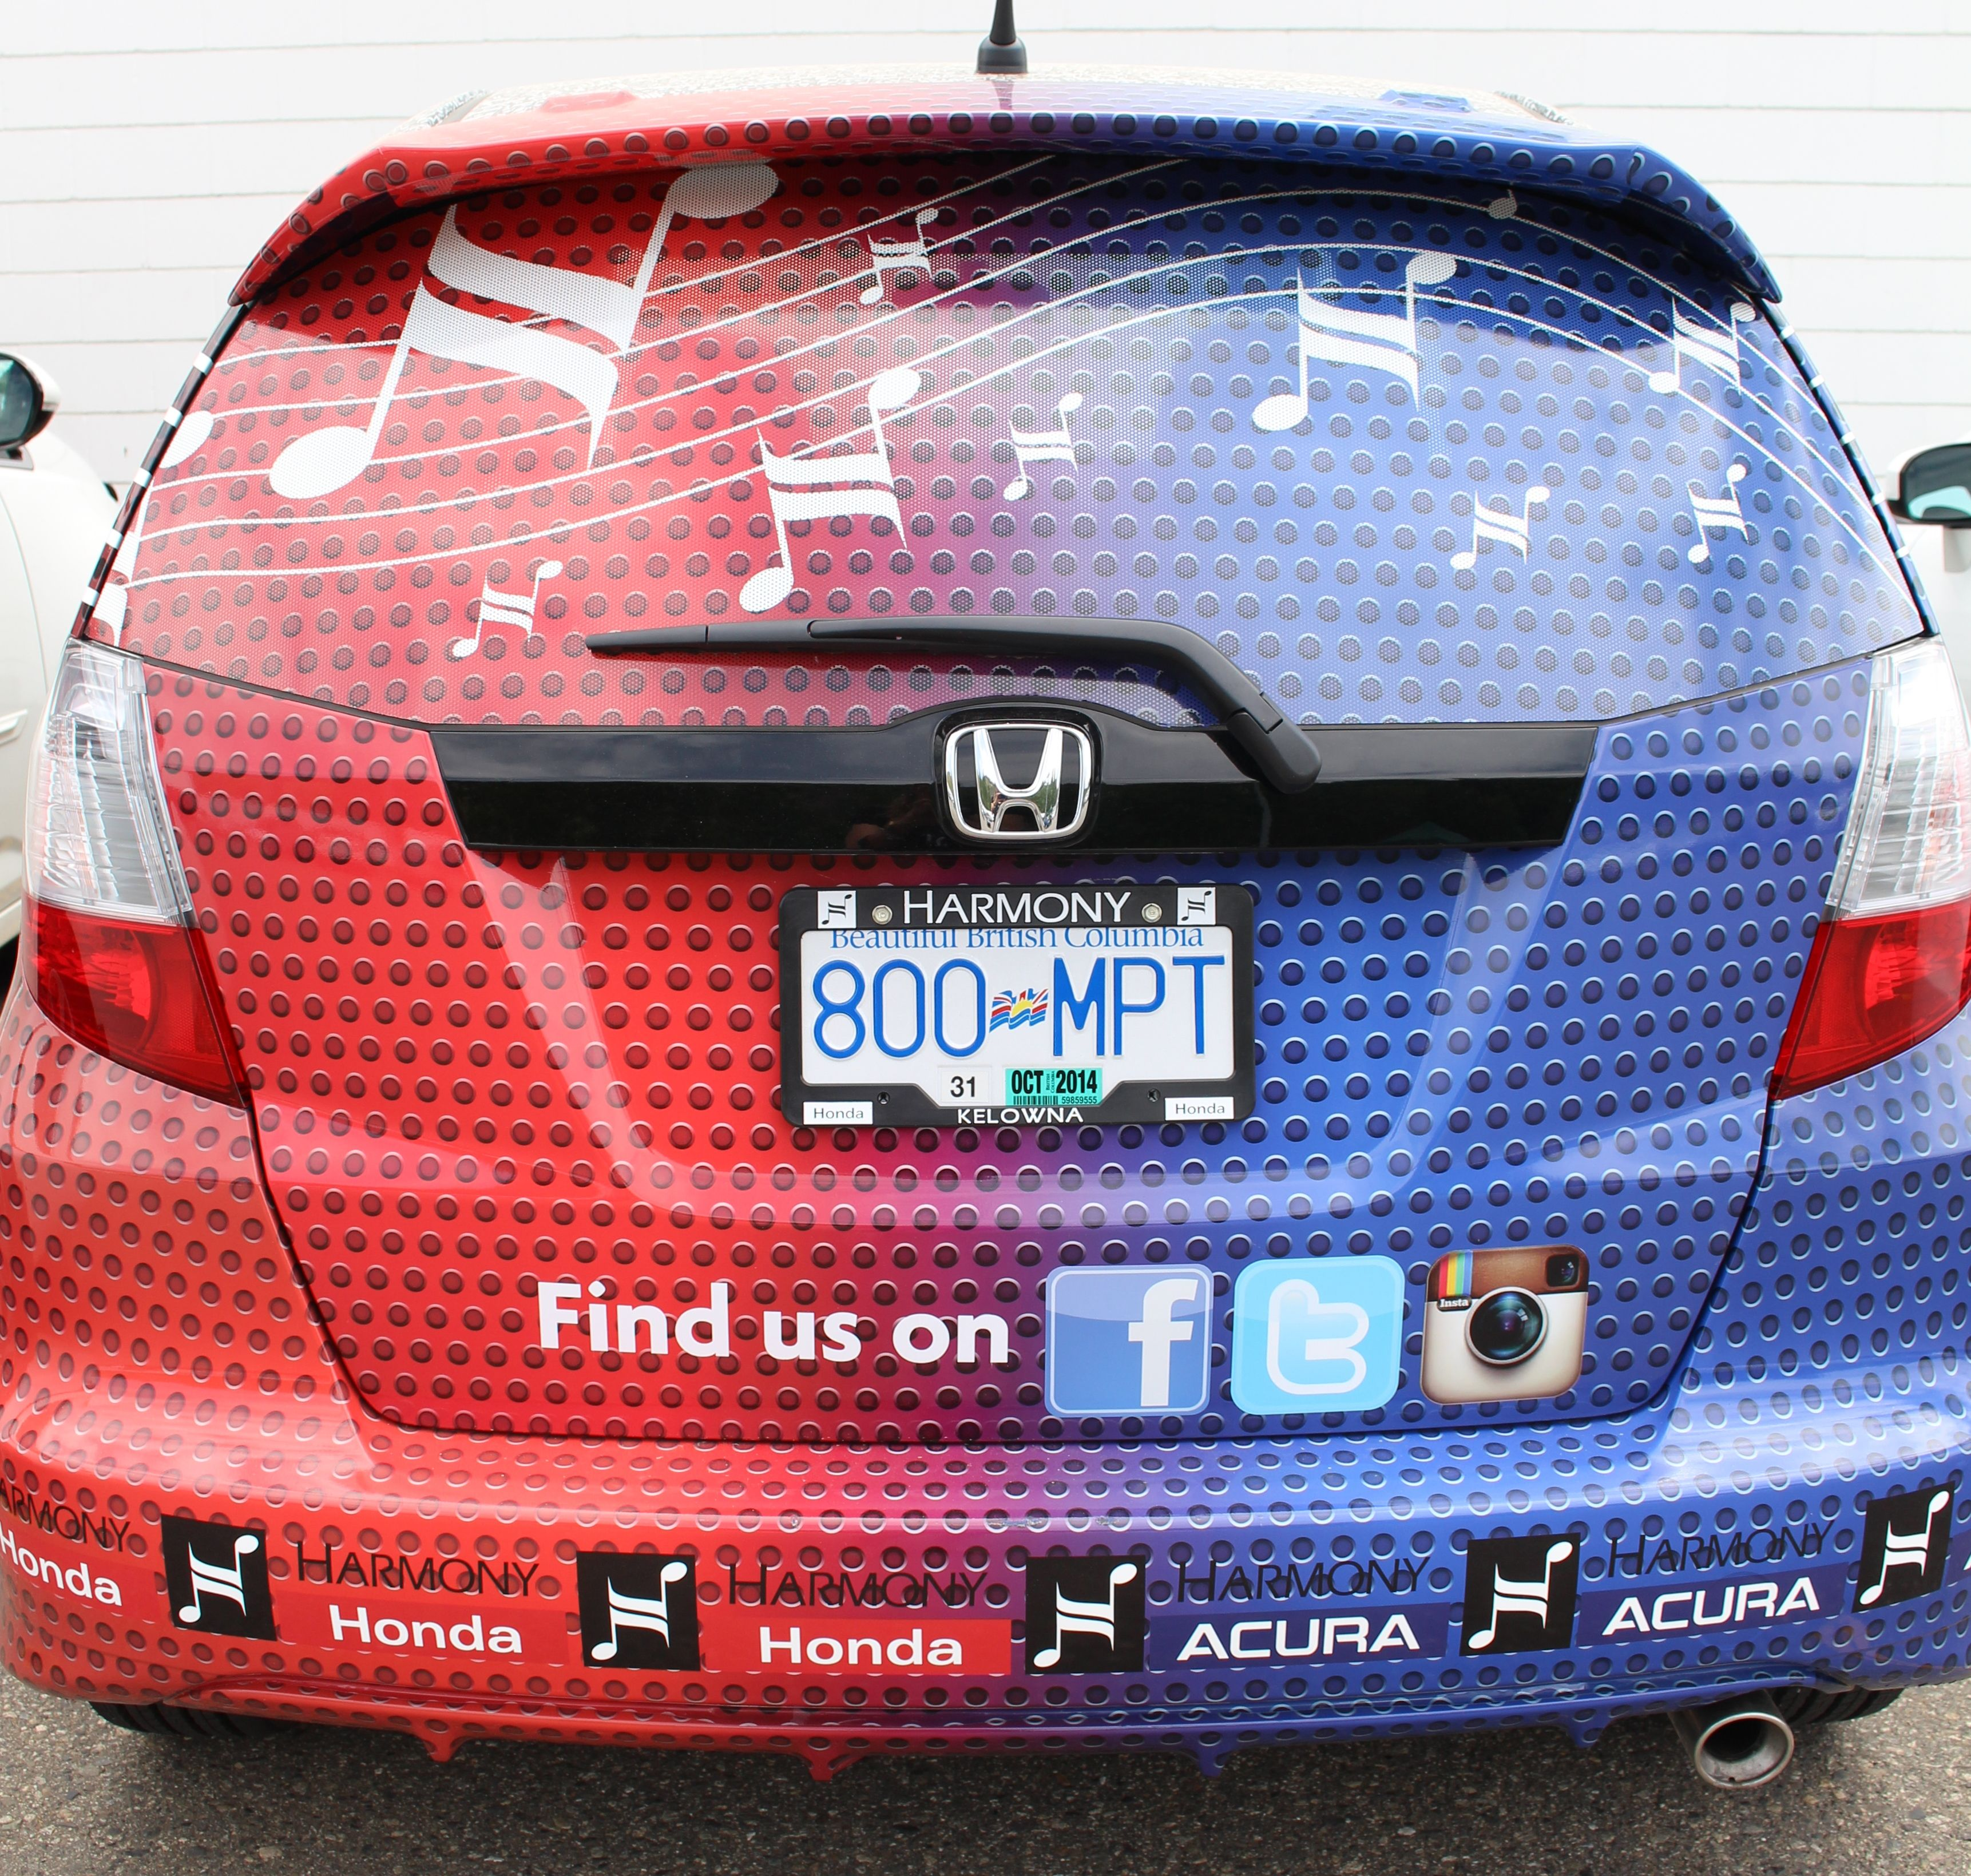 Find us on Social Media and Find our Fit, tell us where and you will be entered to win some great prizes! #honda #fit #findthefit #prizes #win #colorful #follow #nofilter #kelowna